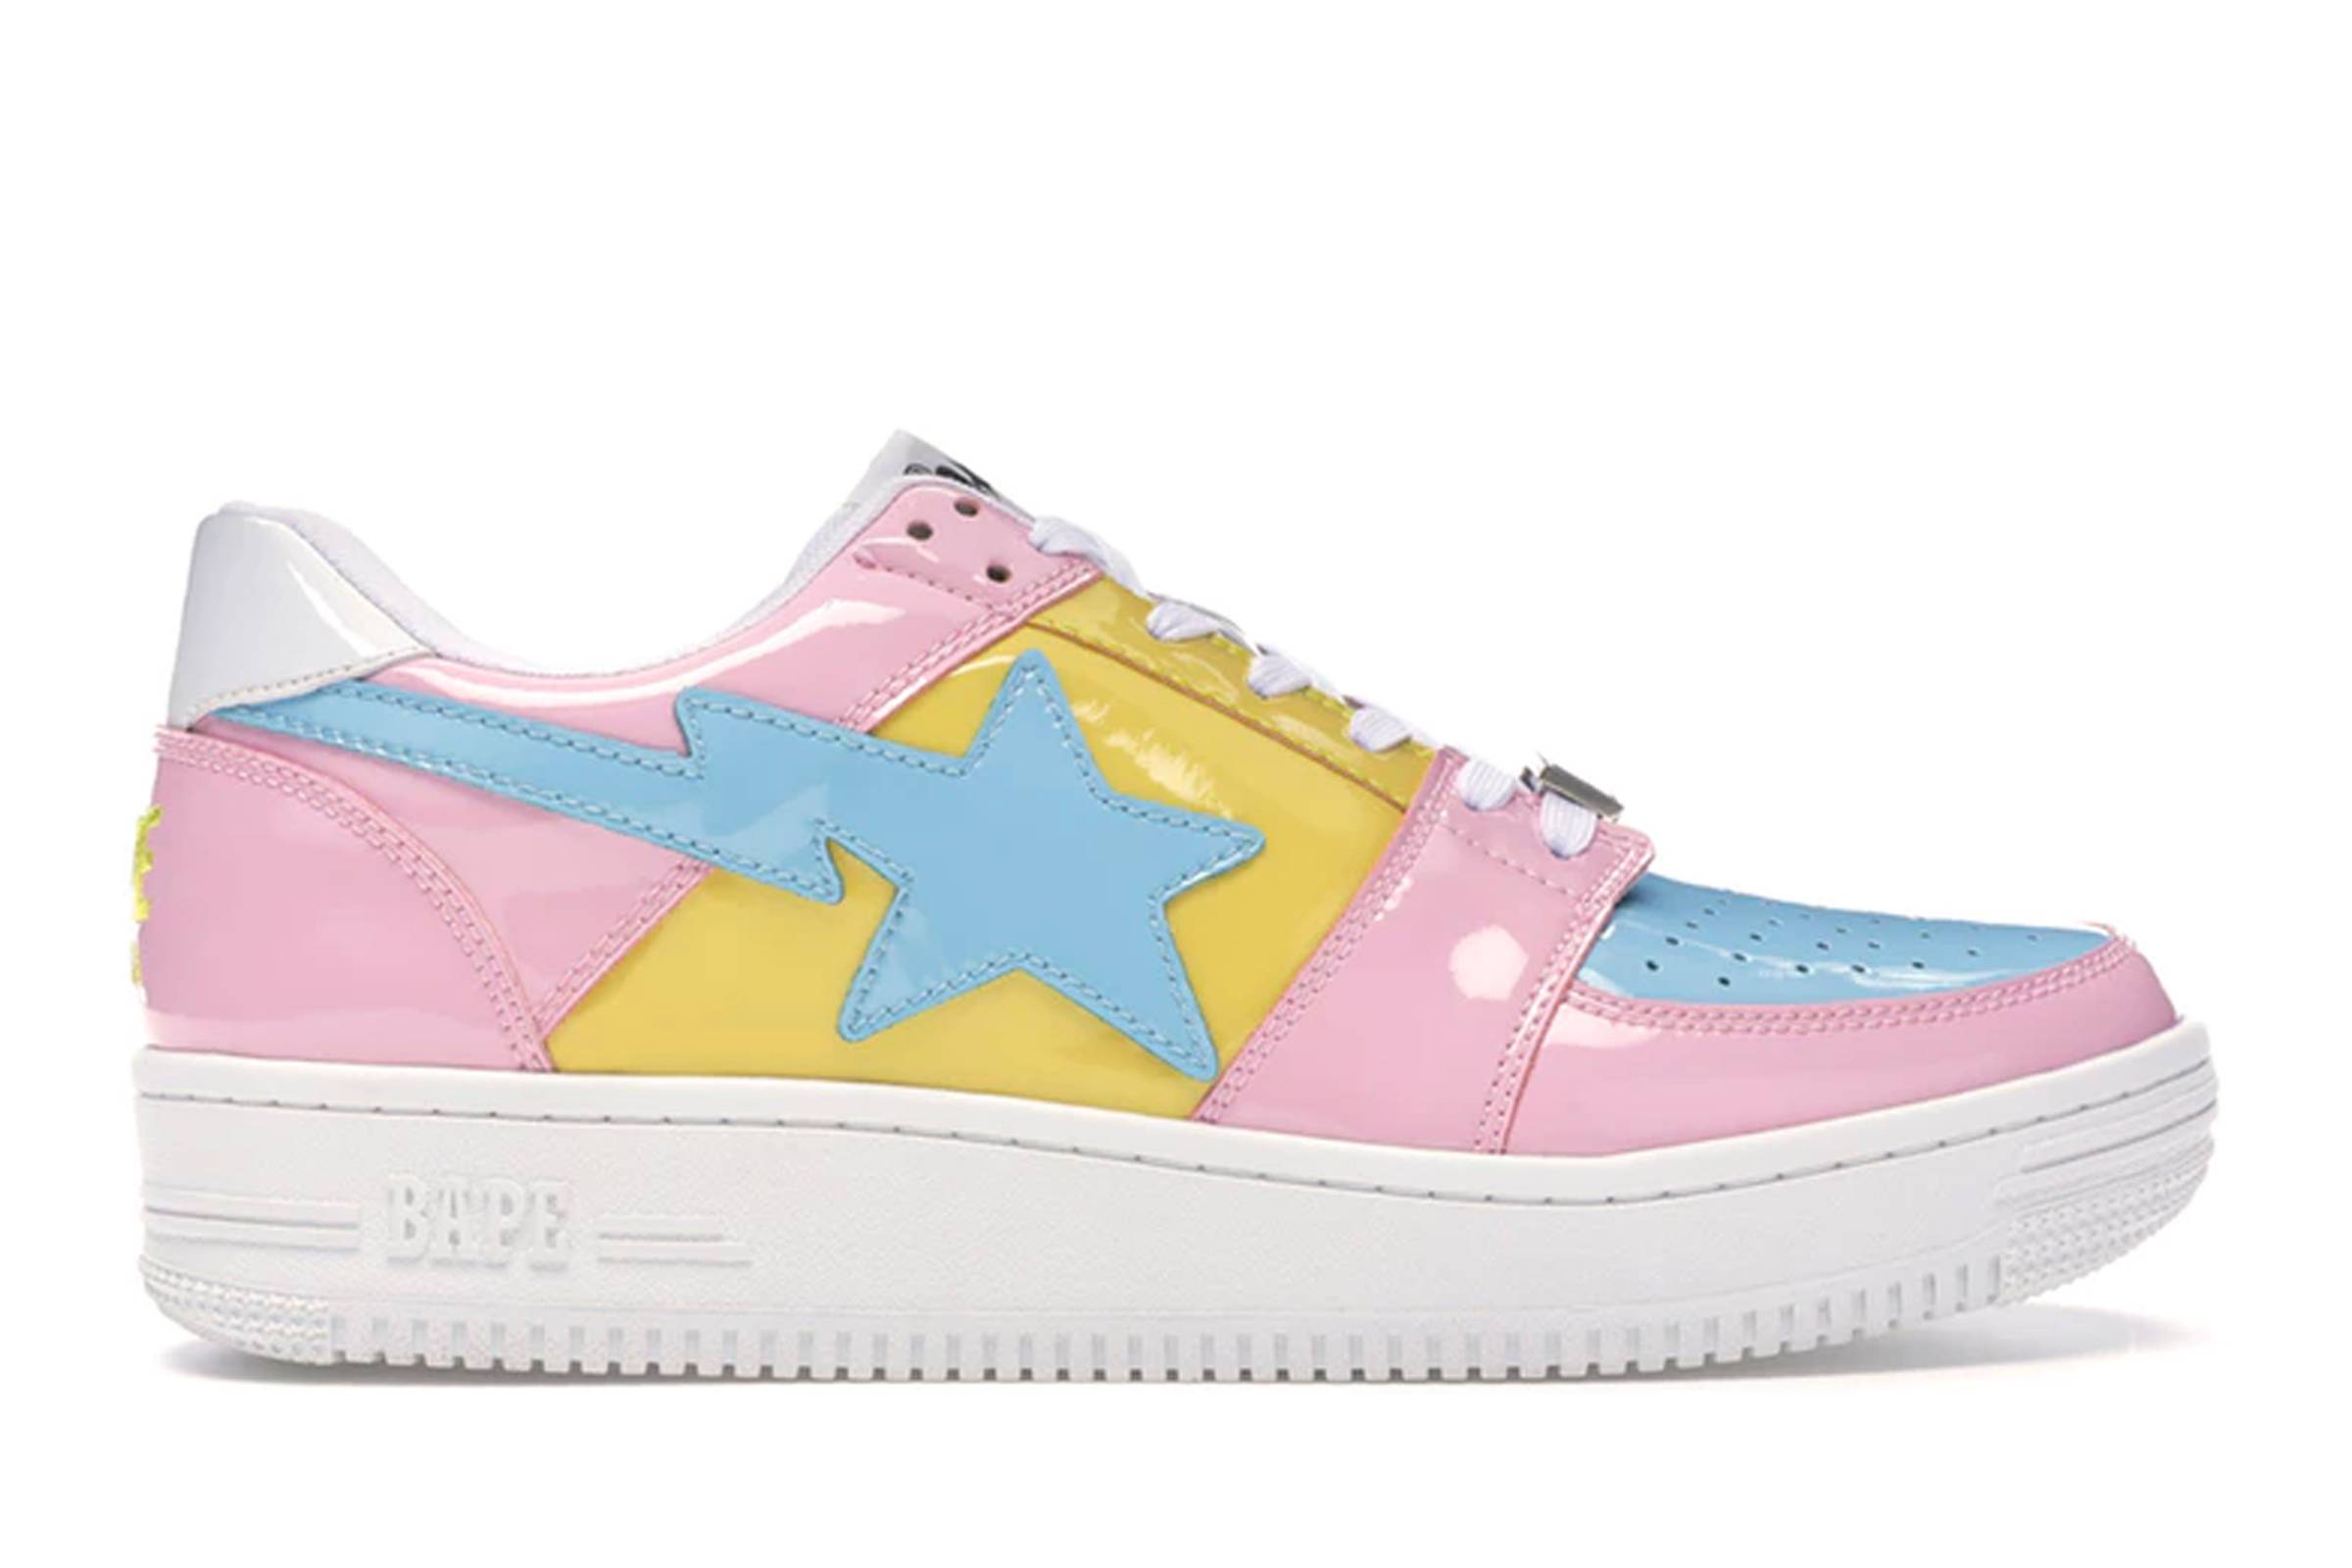 Cotton Candy Bapesta (recurring)